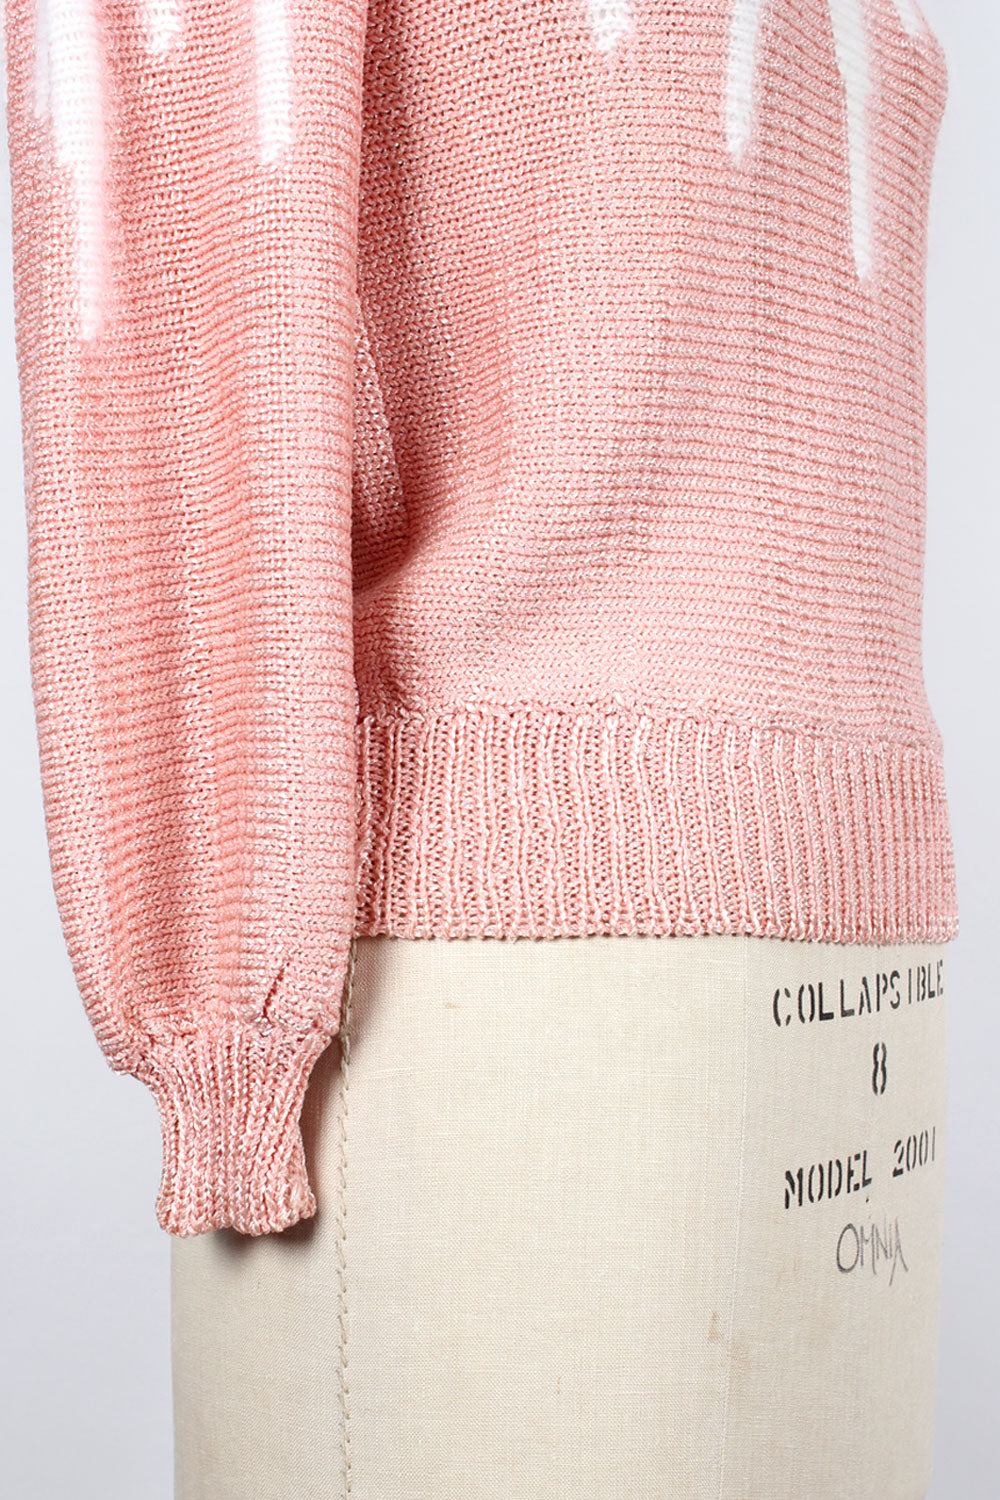 Angora Peachy Pink Sweater M